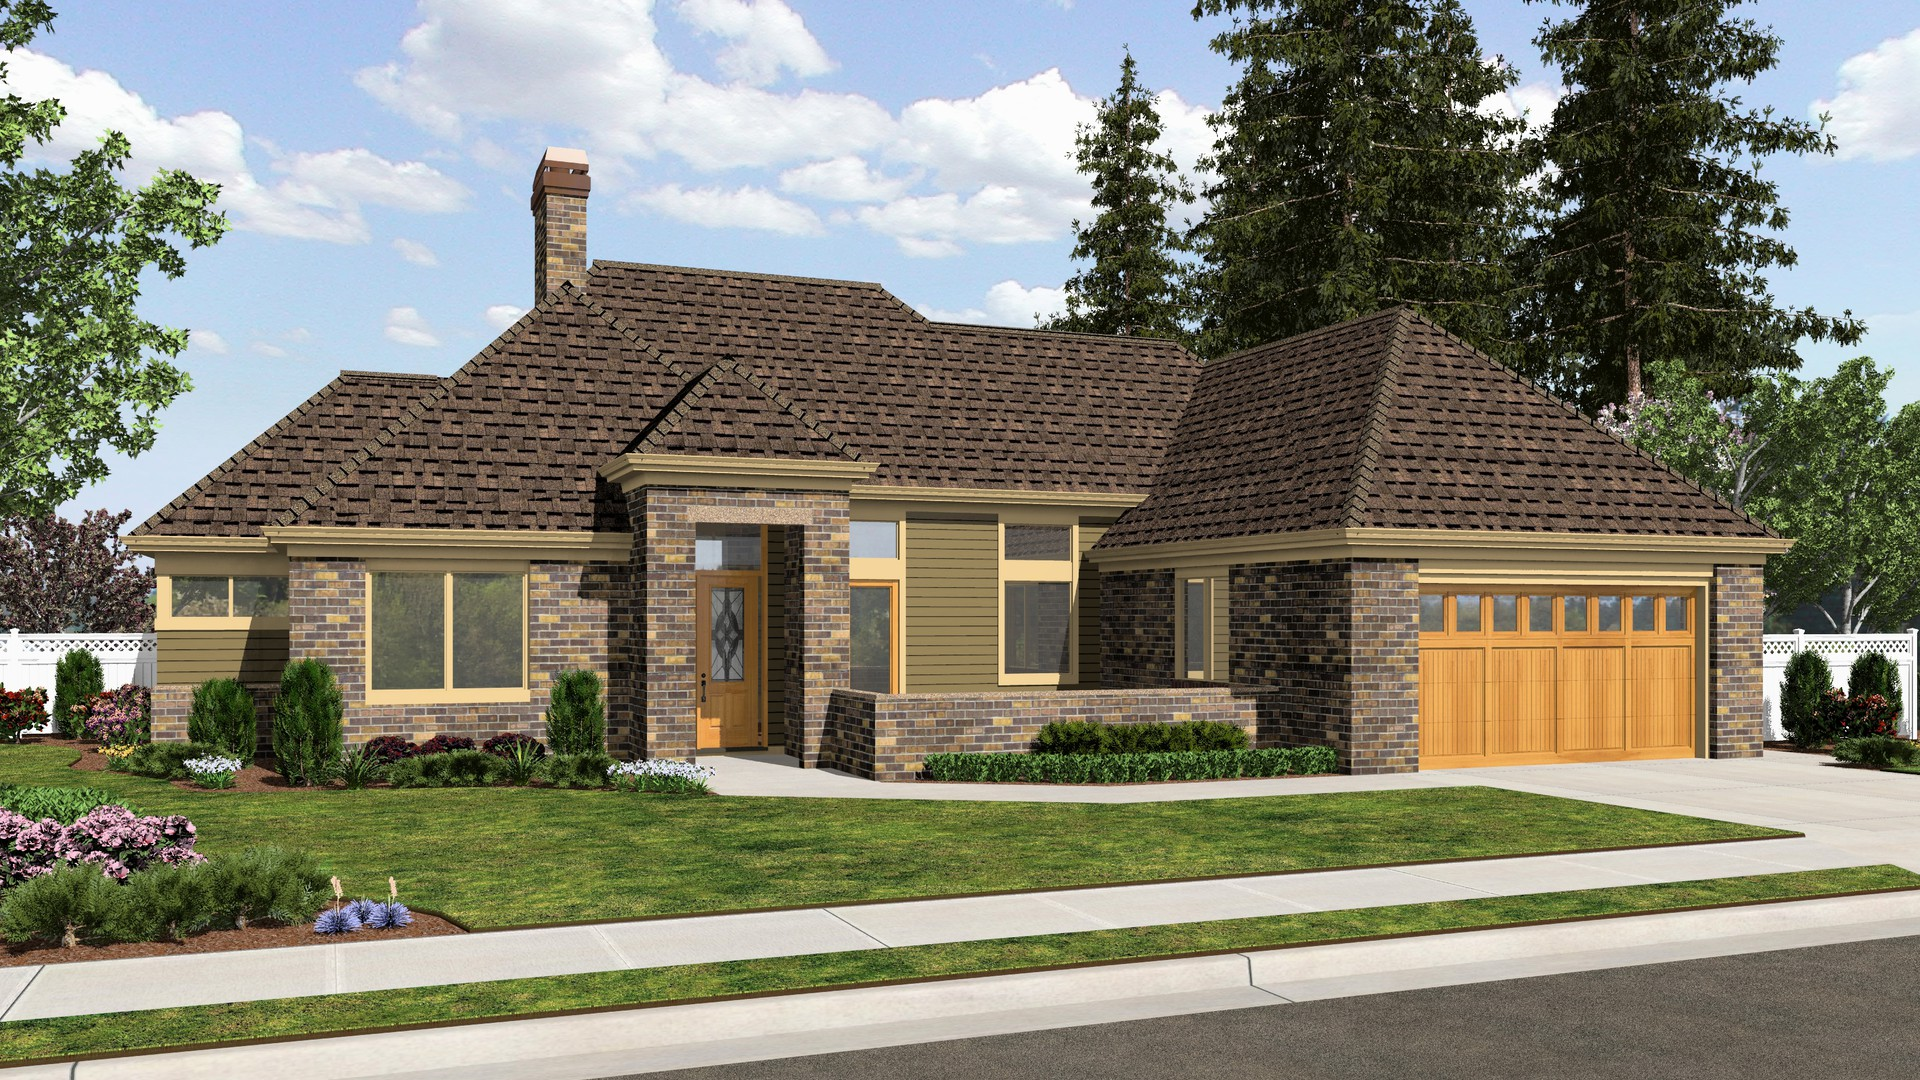 Ranch House Plan 1163B The Oxenhope: 1508 Sqft, 2 Beds, 2 ...